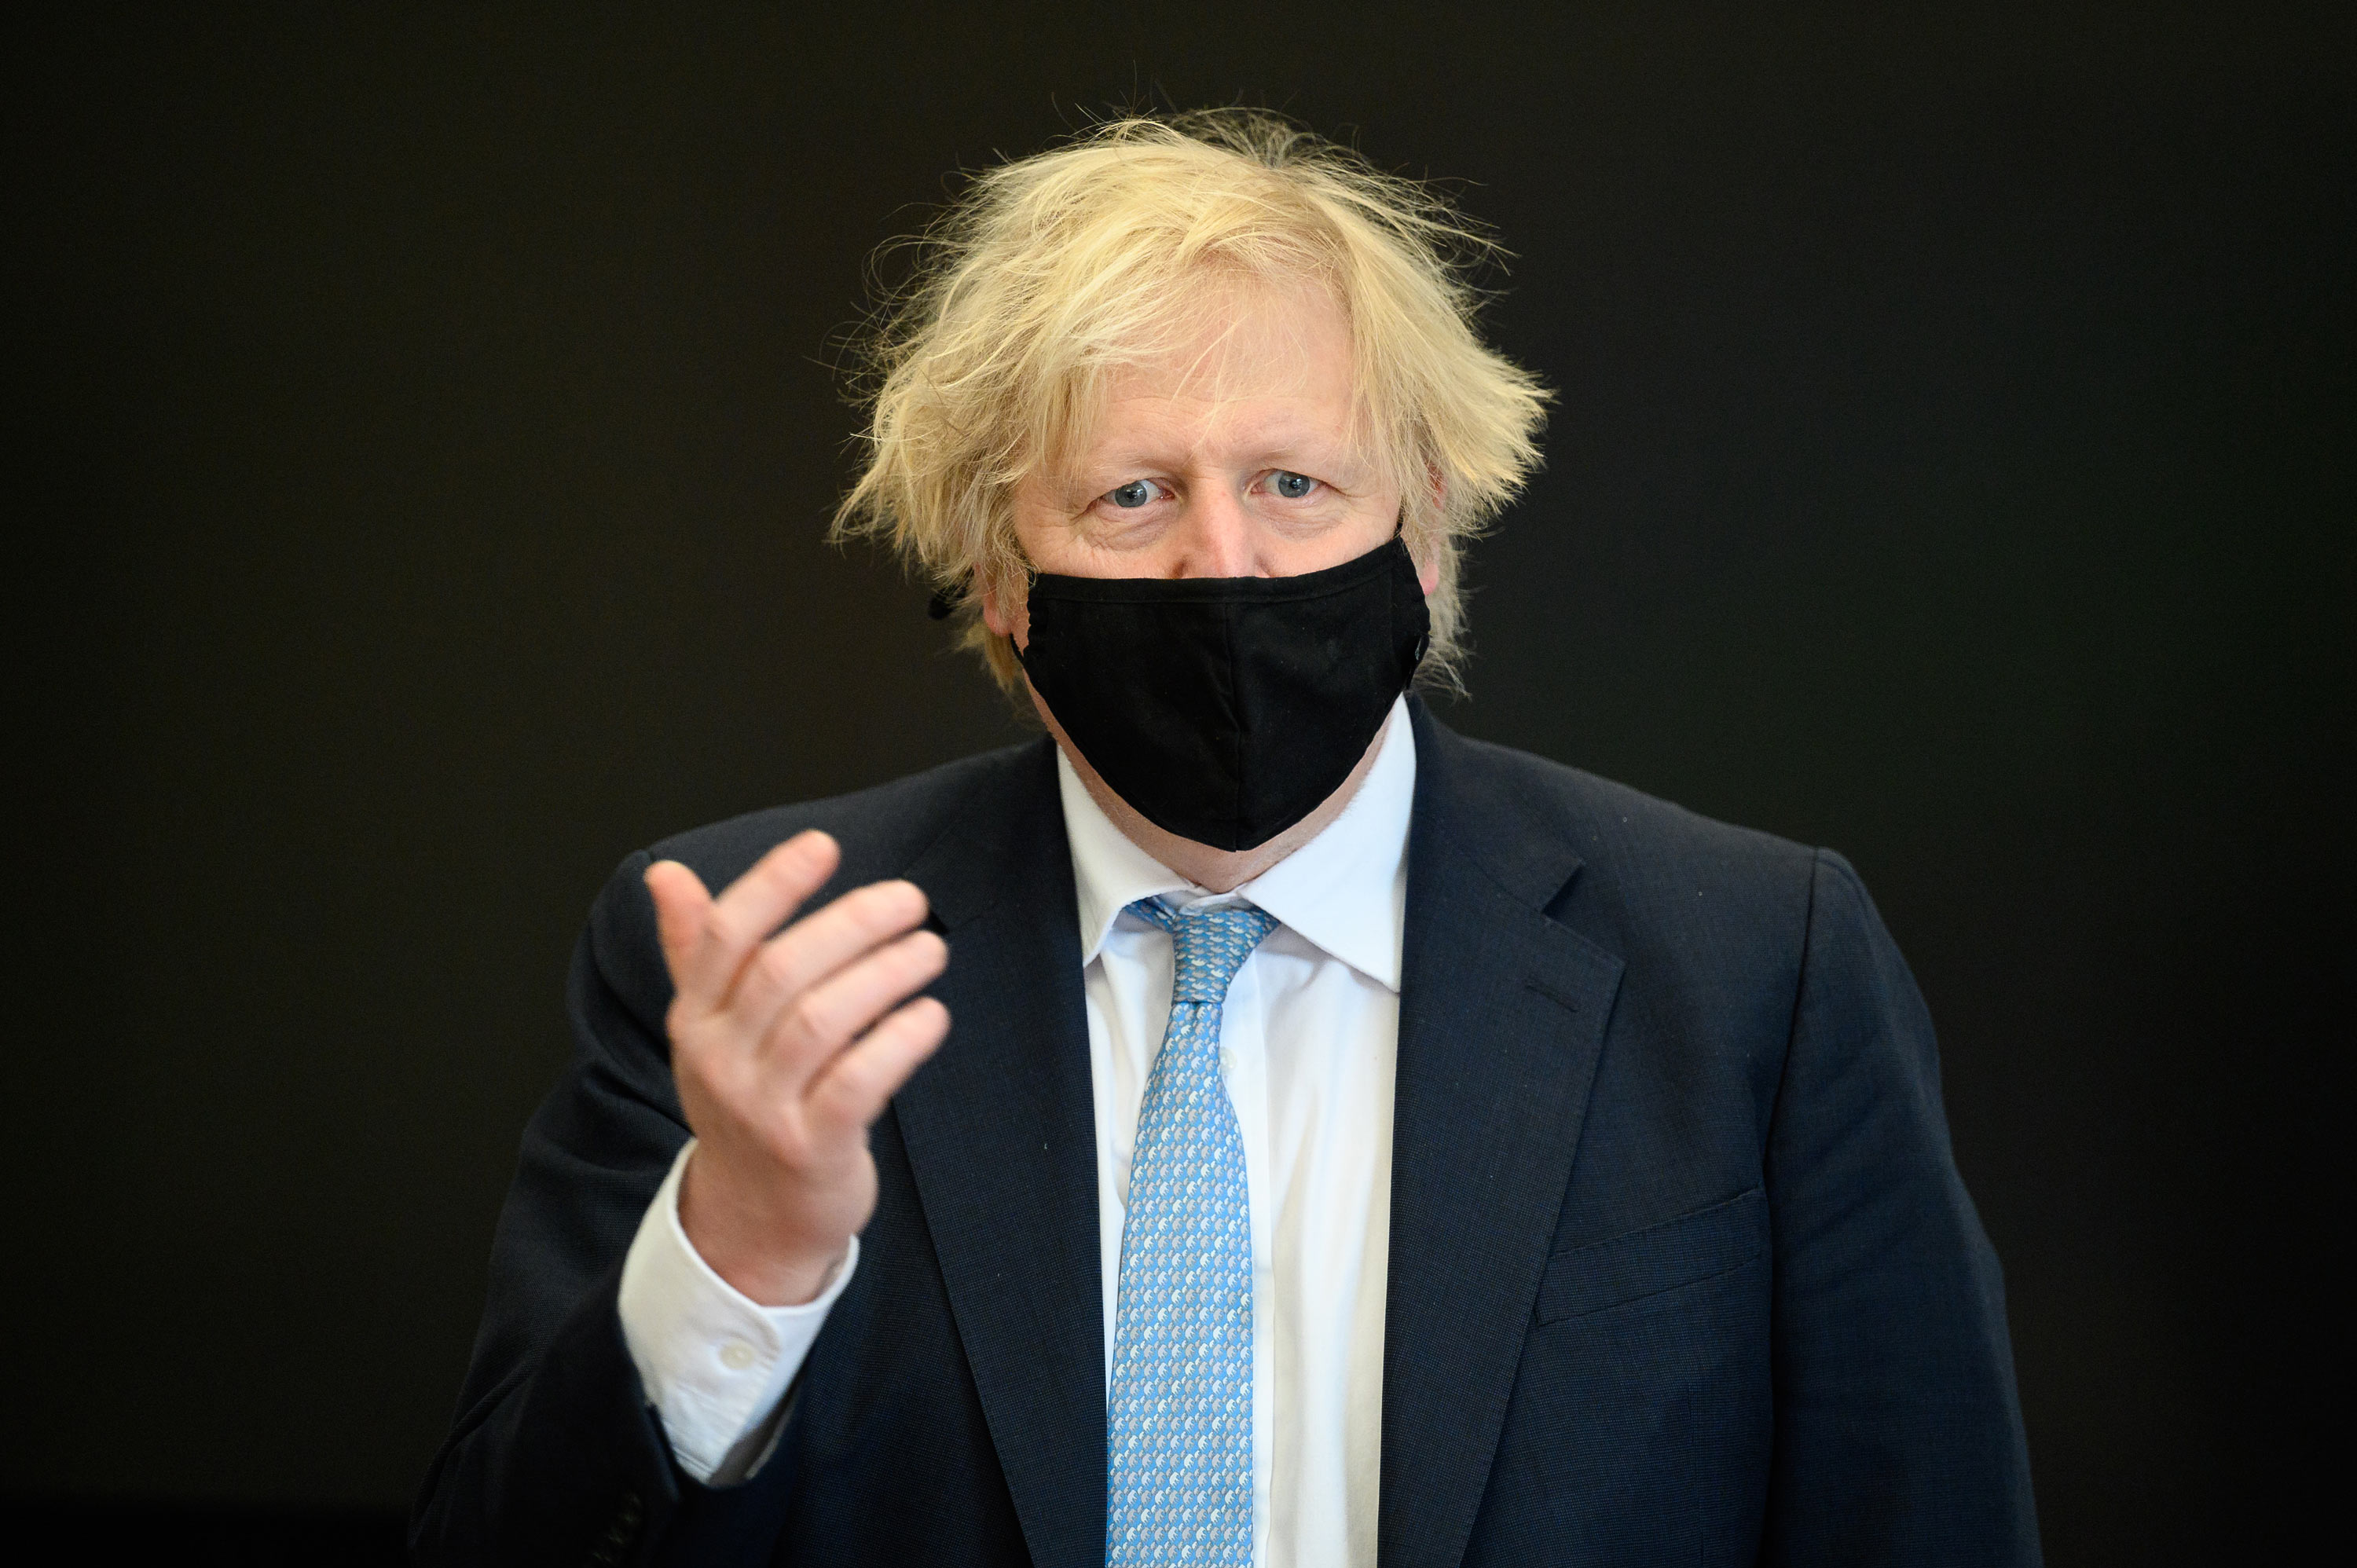 Prime Minister Boris Johnson speaks at Colham Manor primary school during a constituency visit on March 18 in Uxbridge, England.